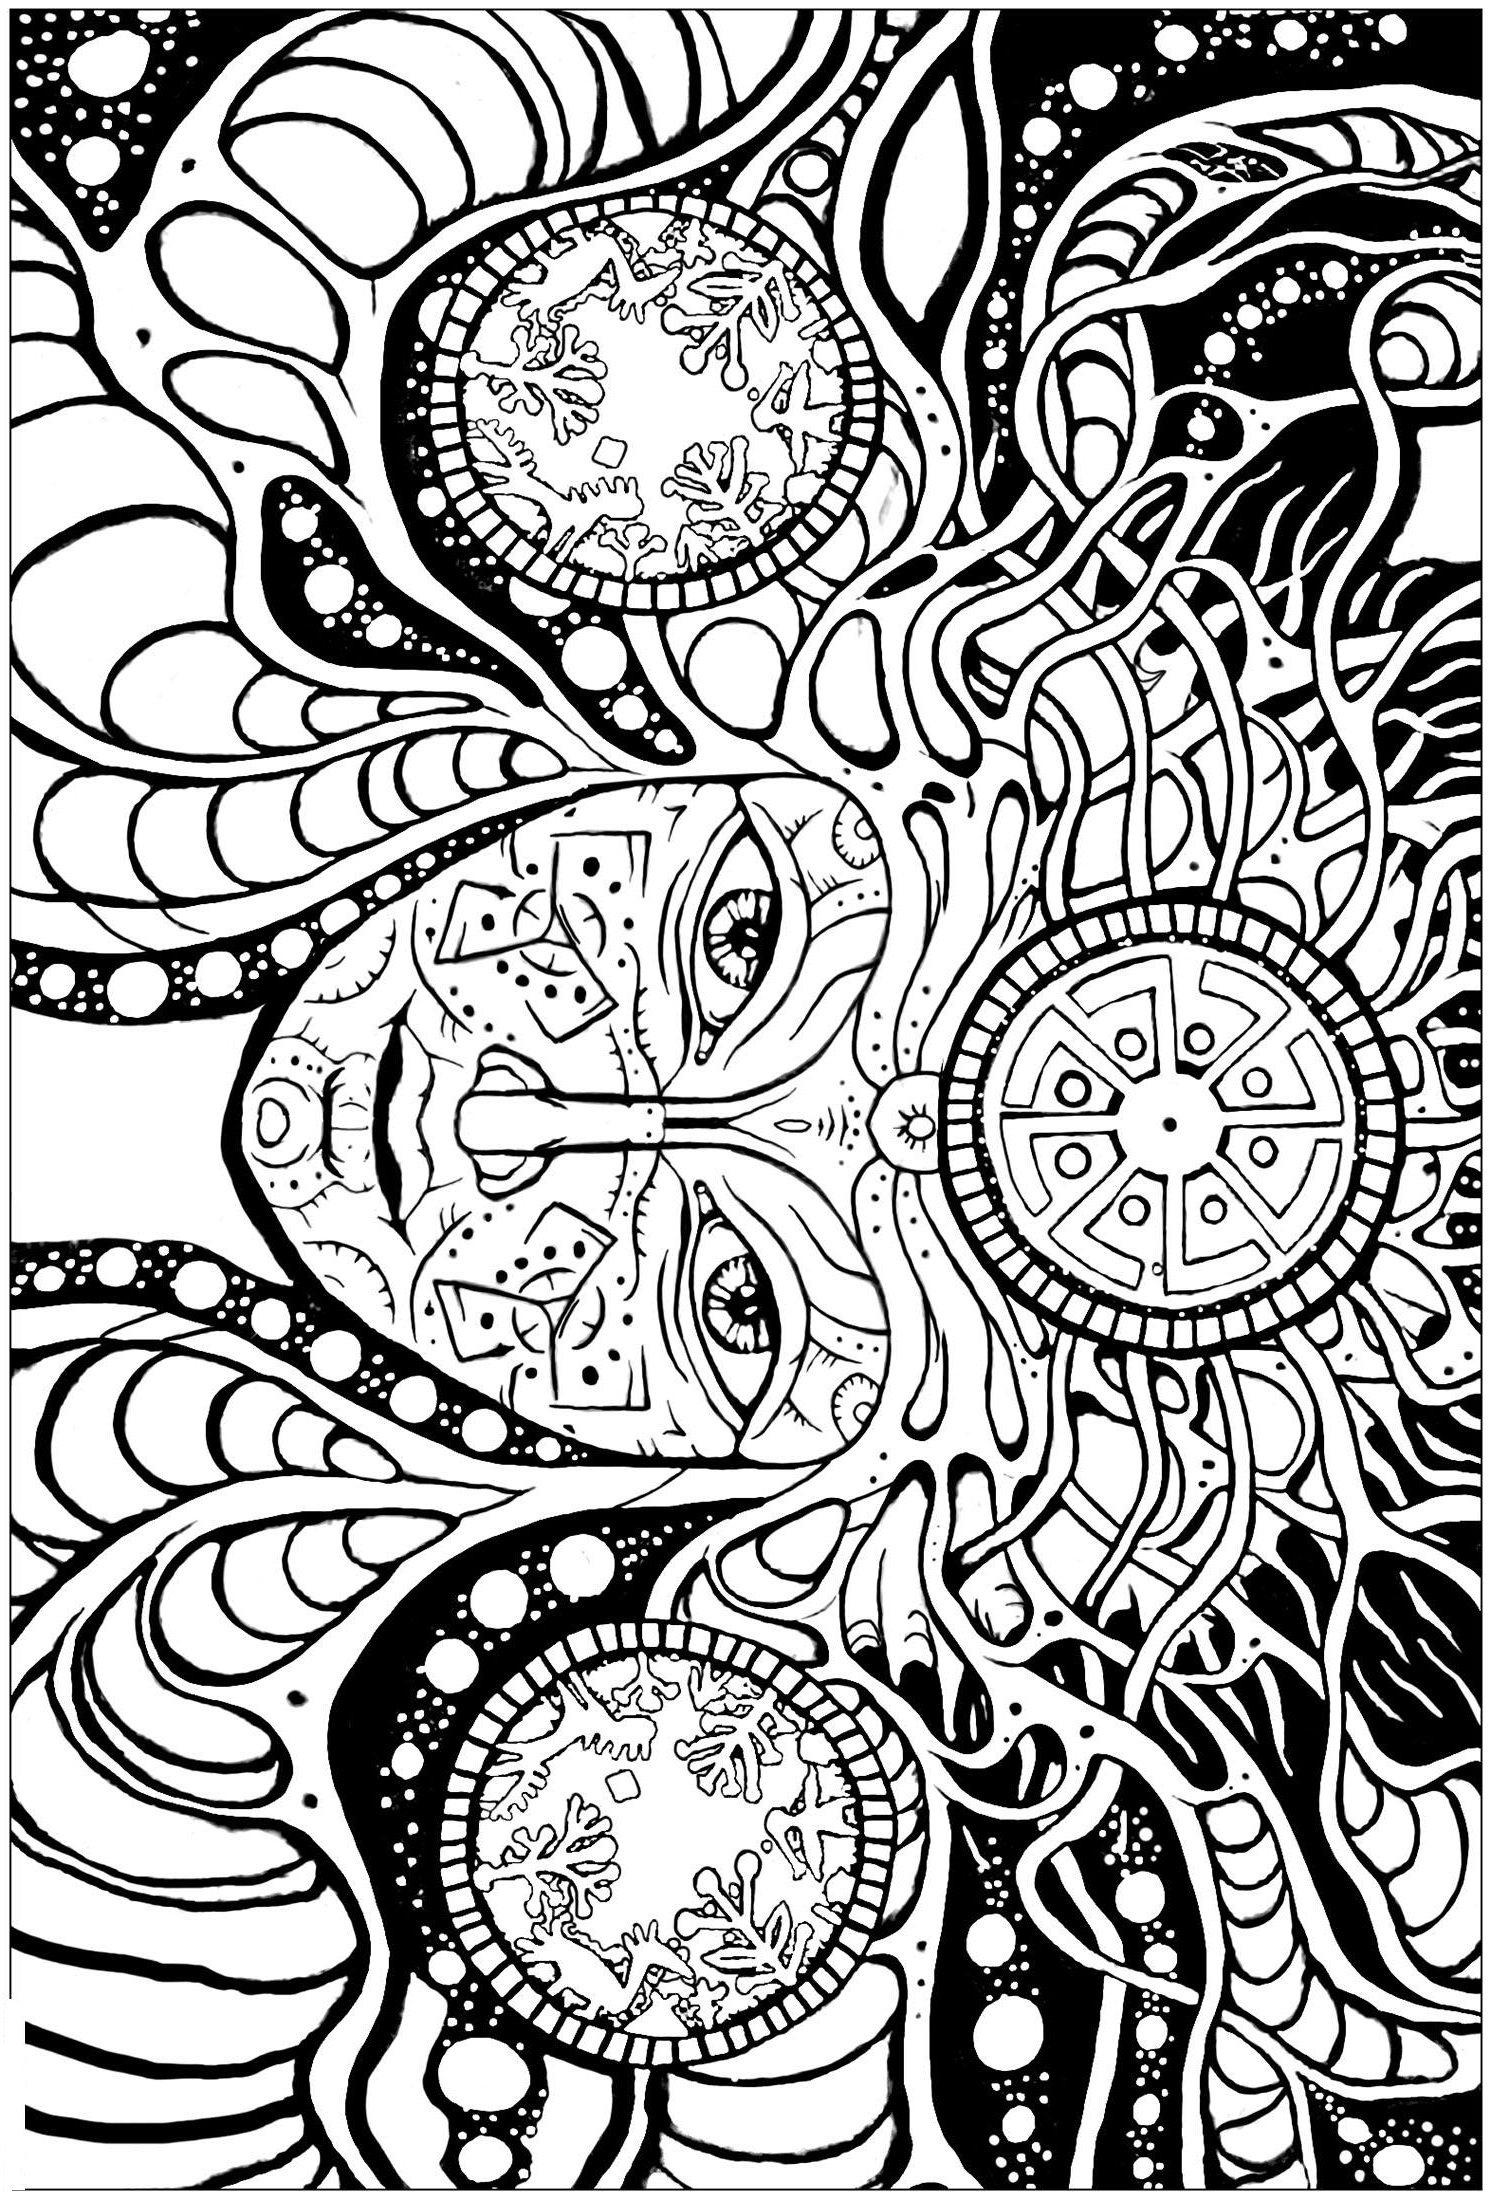 design coloring pictures rosette intricate patterns coloring page free coloring design pictures coloring